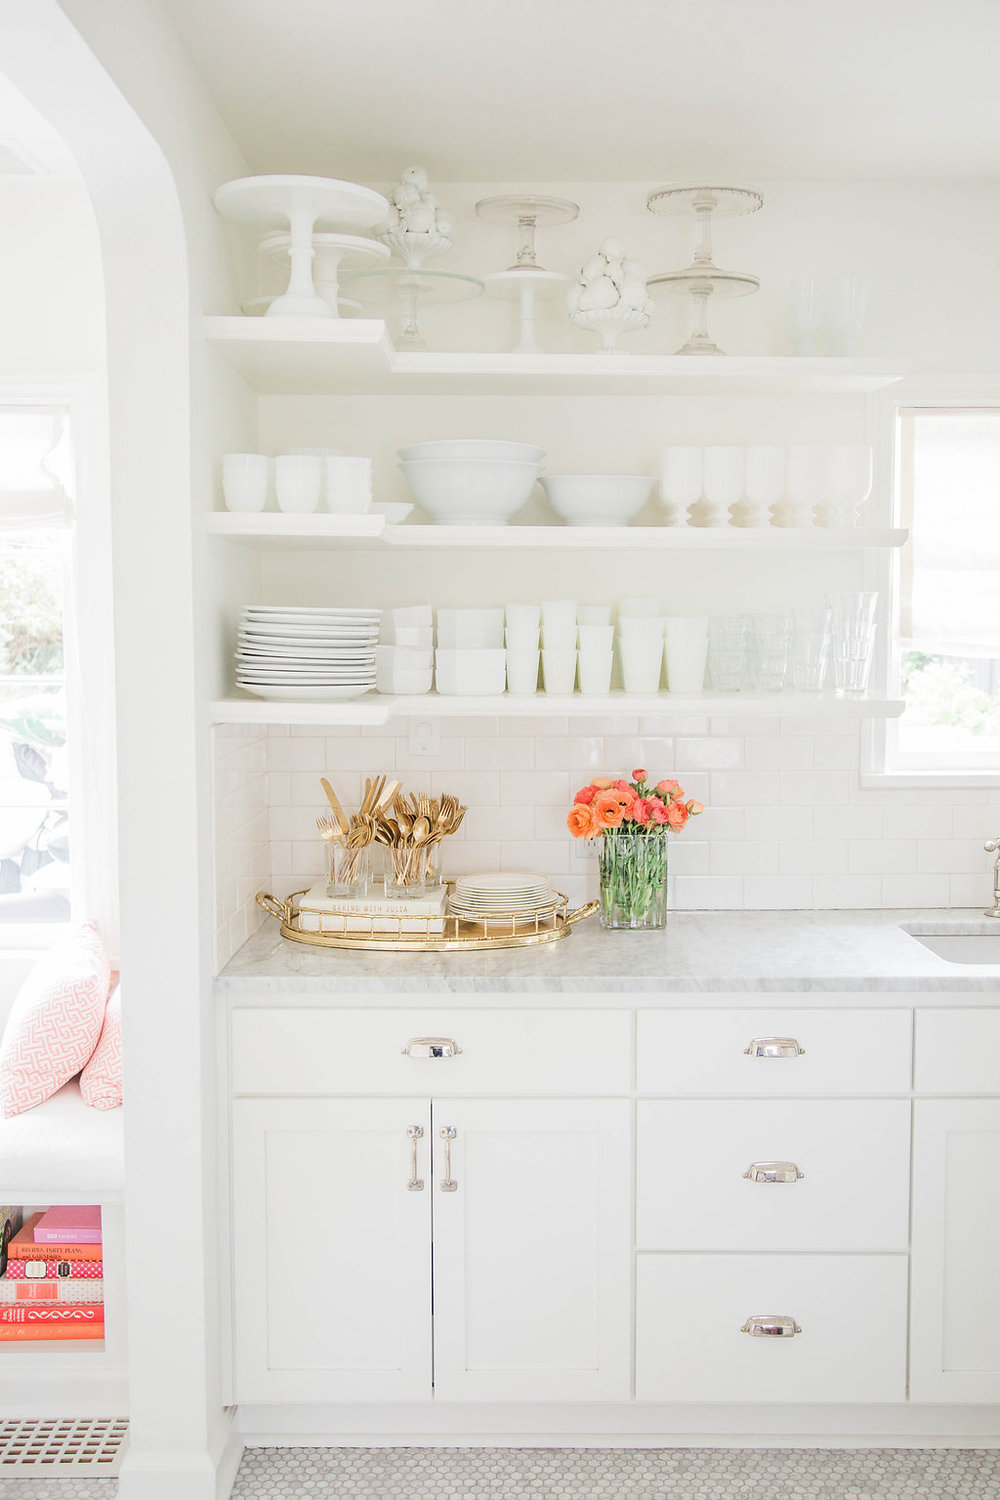 Kitchen Goals | Dream White Kitchen | Dream Home Tour | White Open Shelving | Stunning Kitchen | As Featured in Style Me Pretty | SMP Living